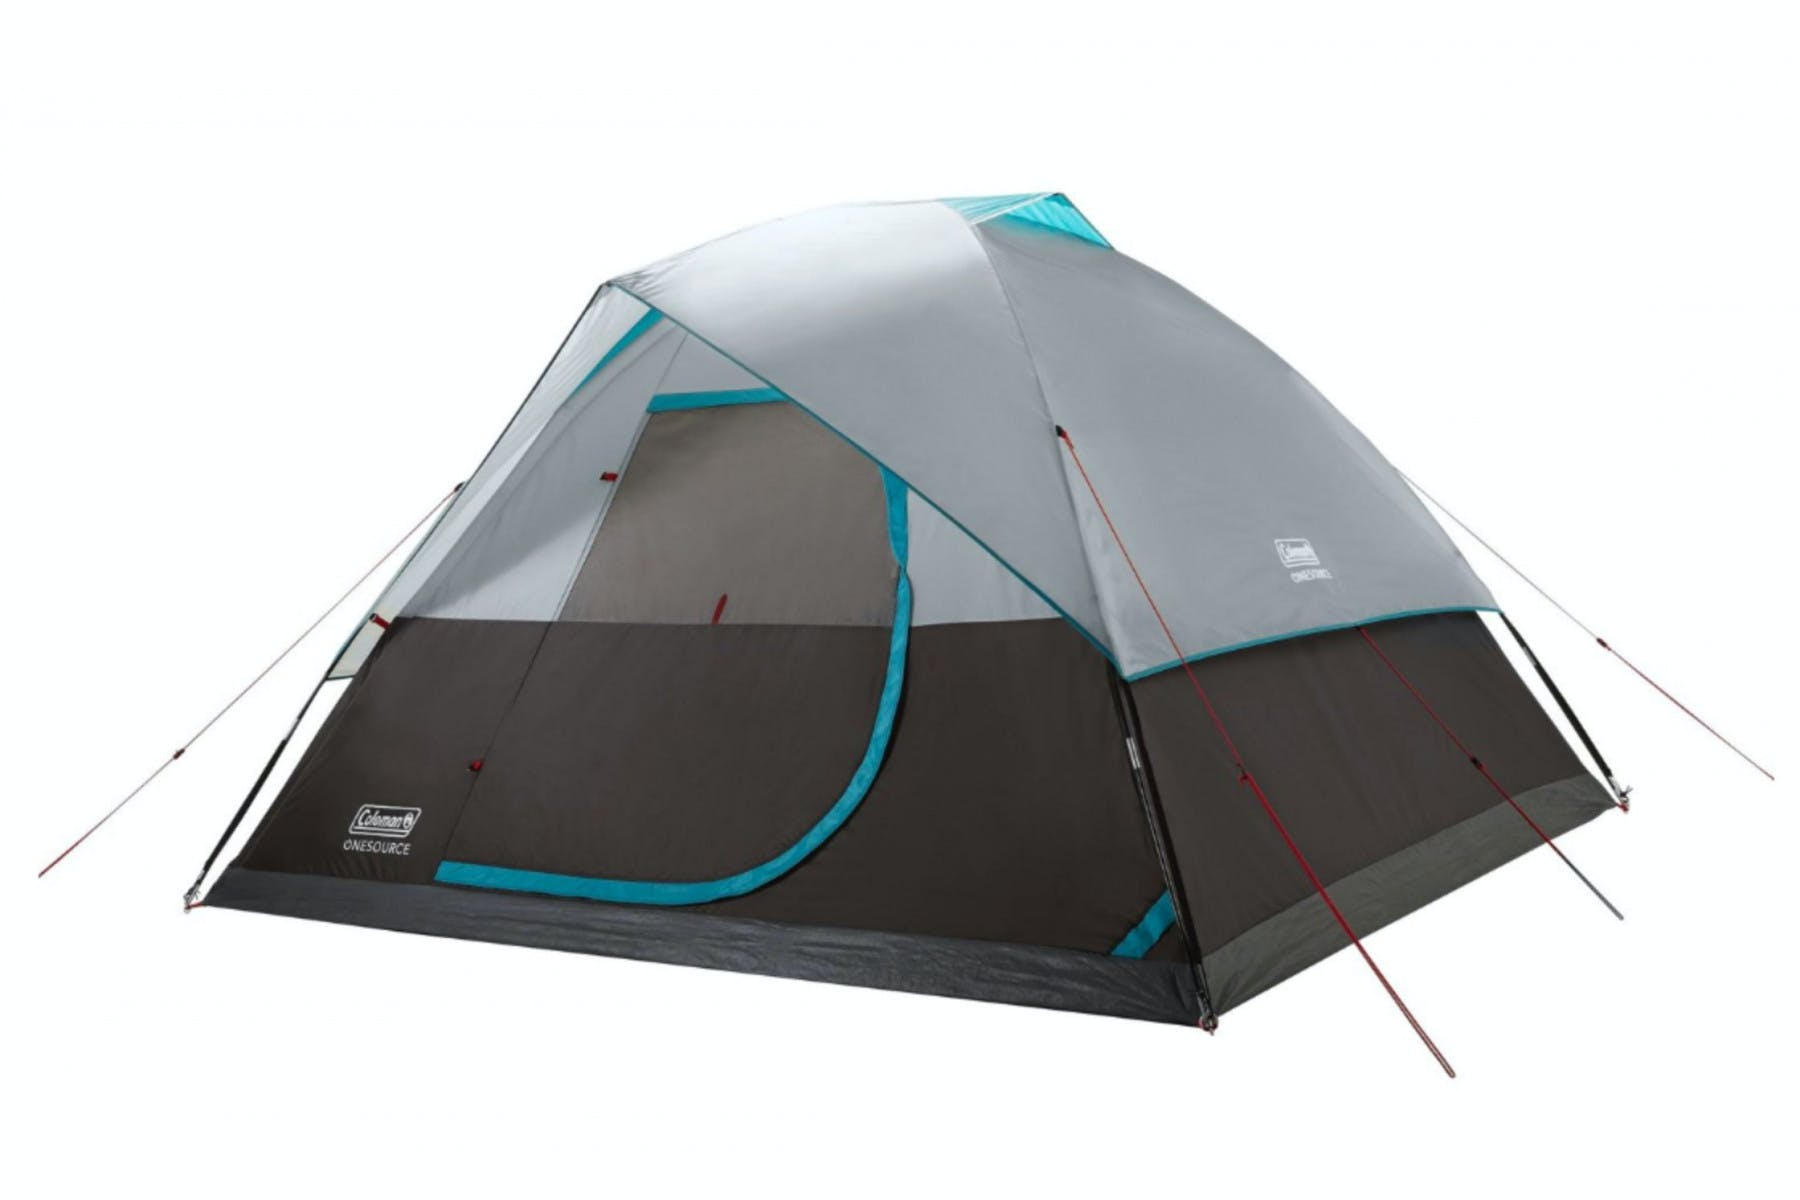 Coleman - OneSource Rechargeable 6-Person Dome Tent with Airflow System & LED Lighting